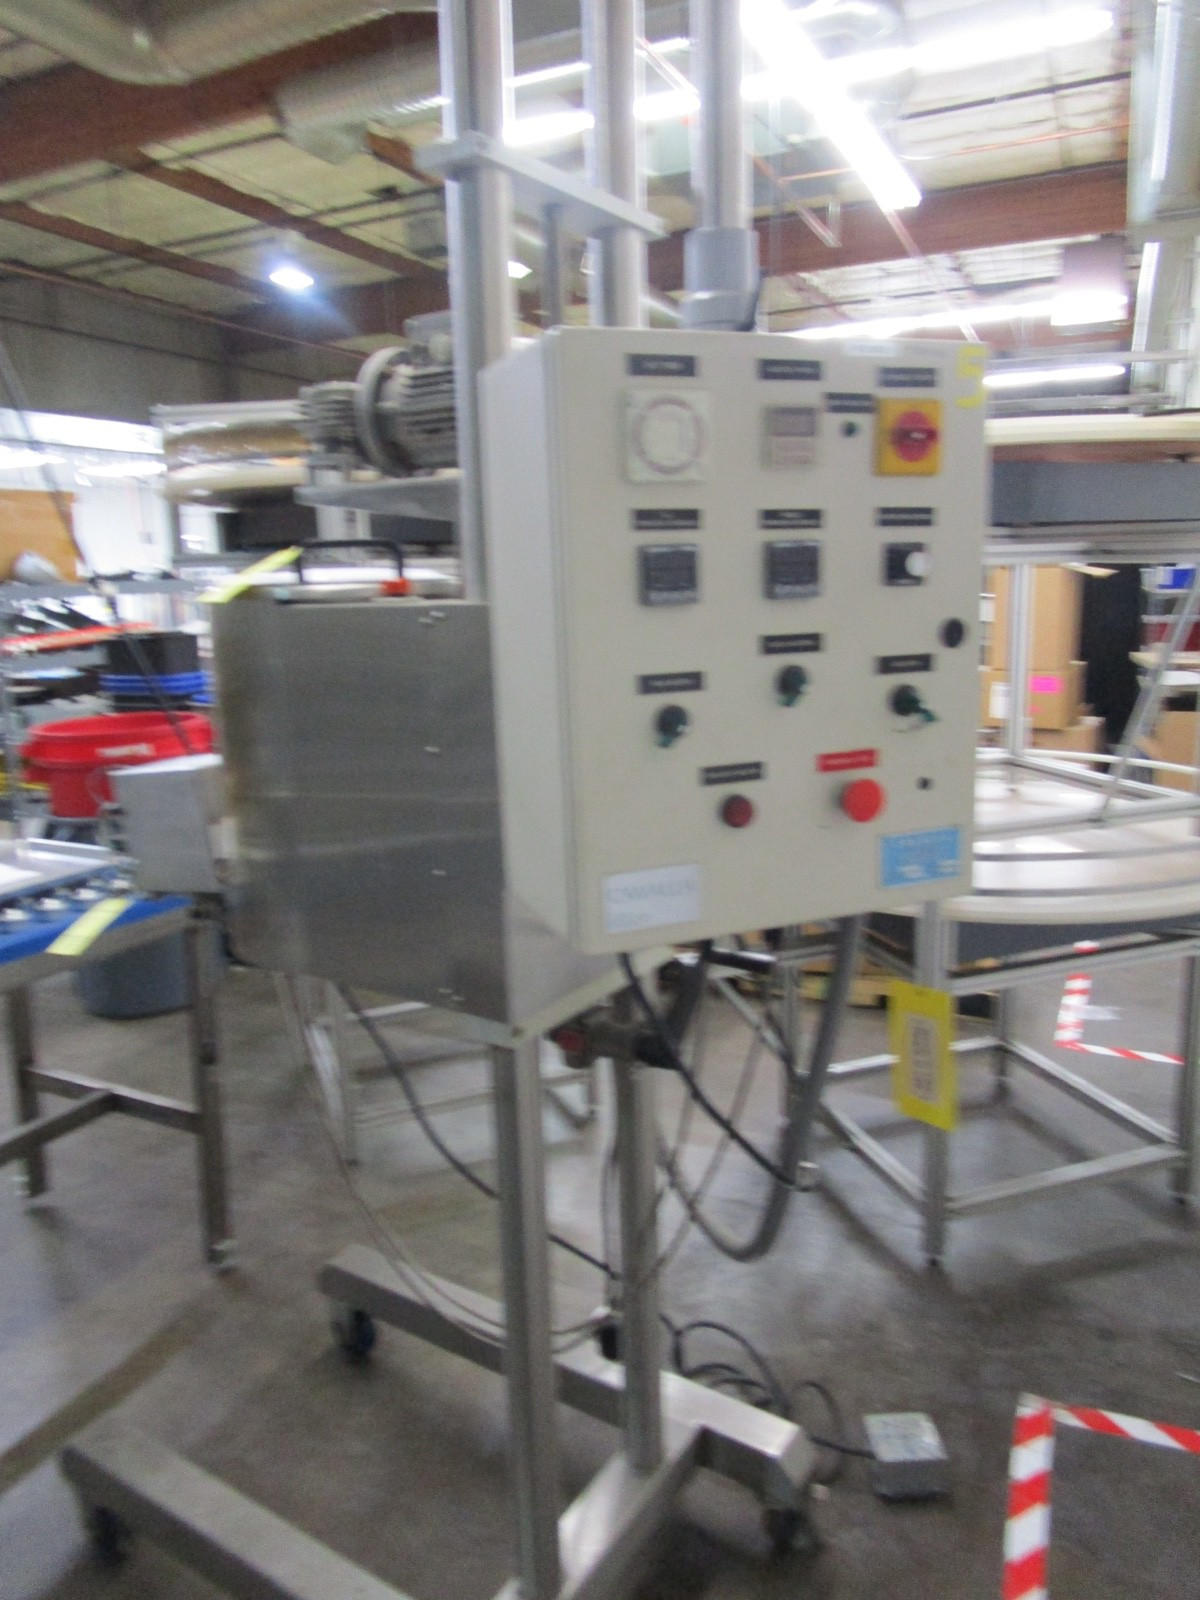 Cavalla Soy Wax Melter For Solid Perfume, K15 Control, s/n 116, Roller Conveyor | Rig Fee: $50